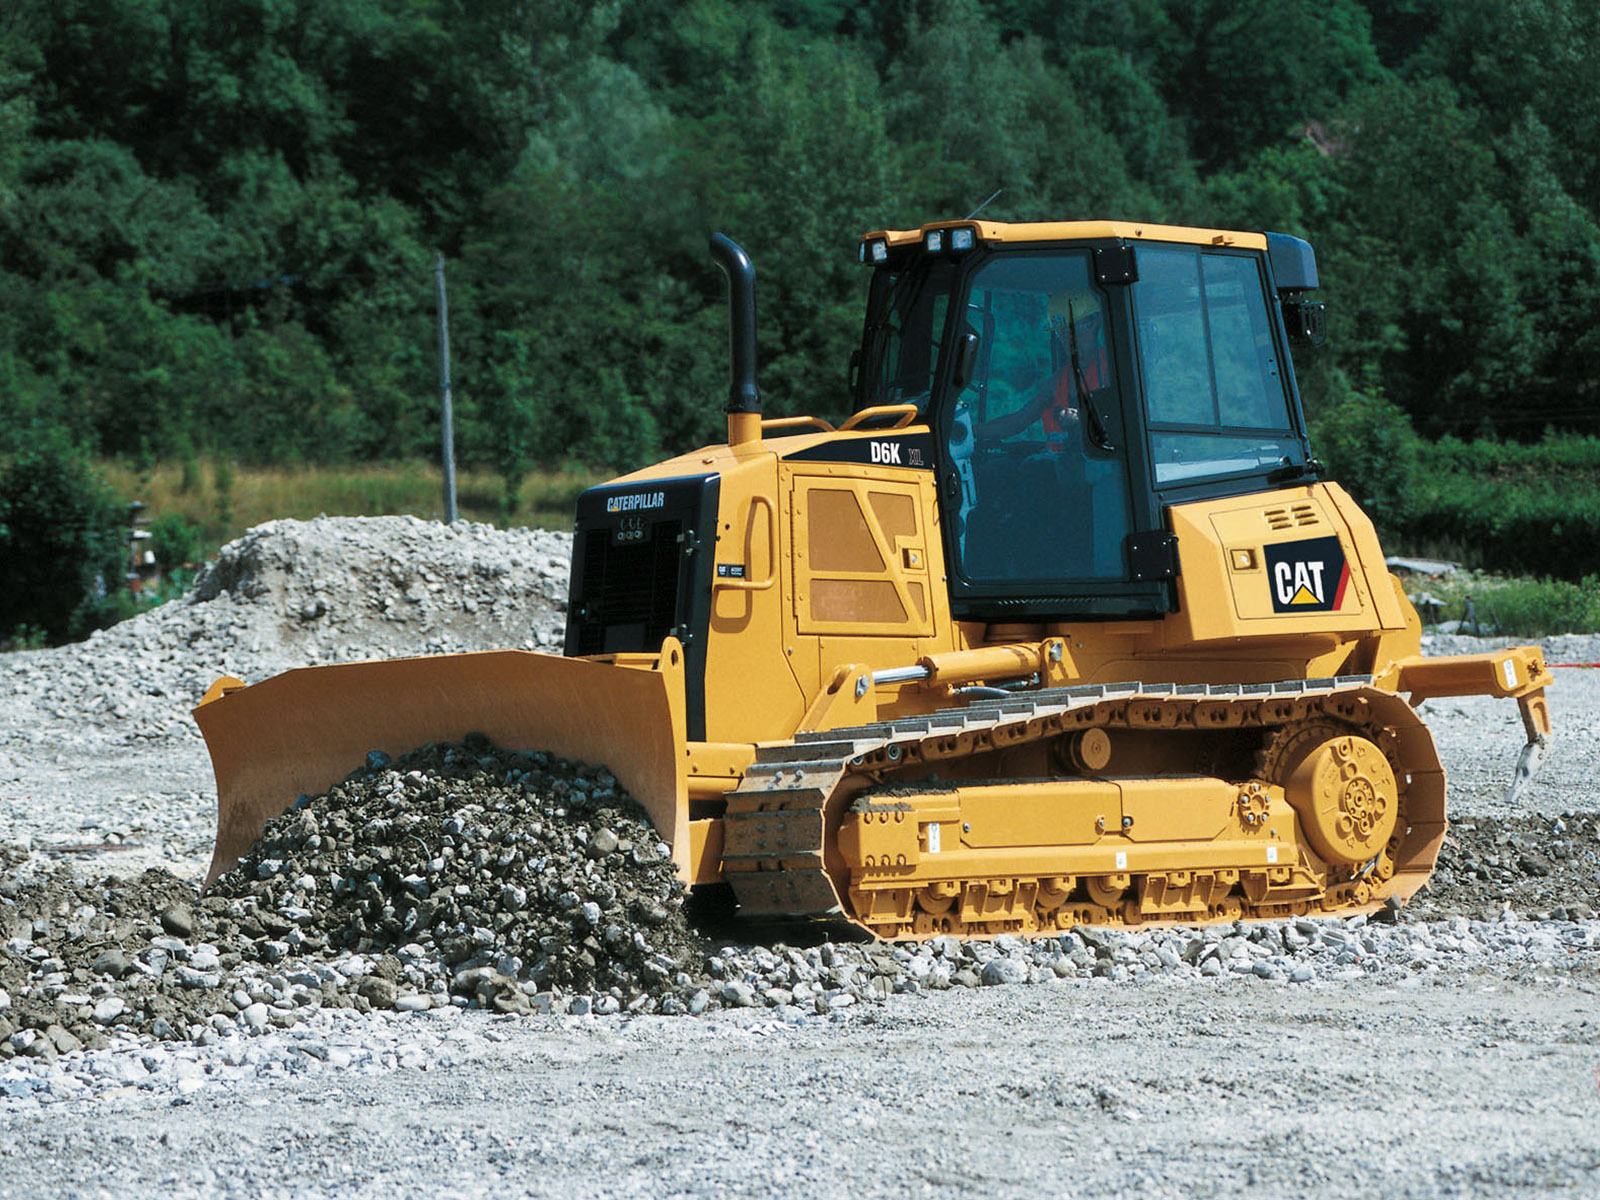 Caterpillar d6 photo - 3